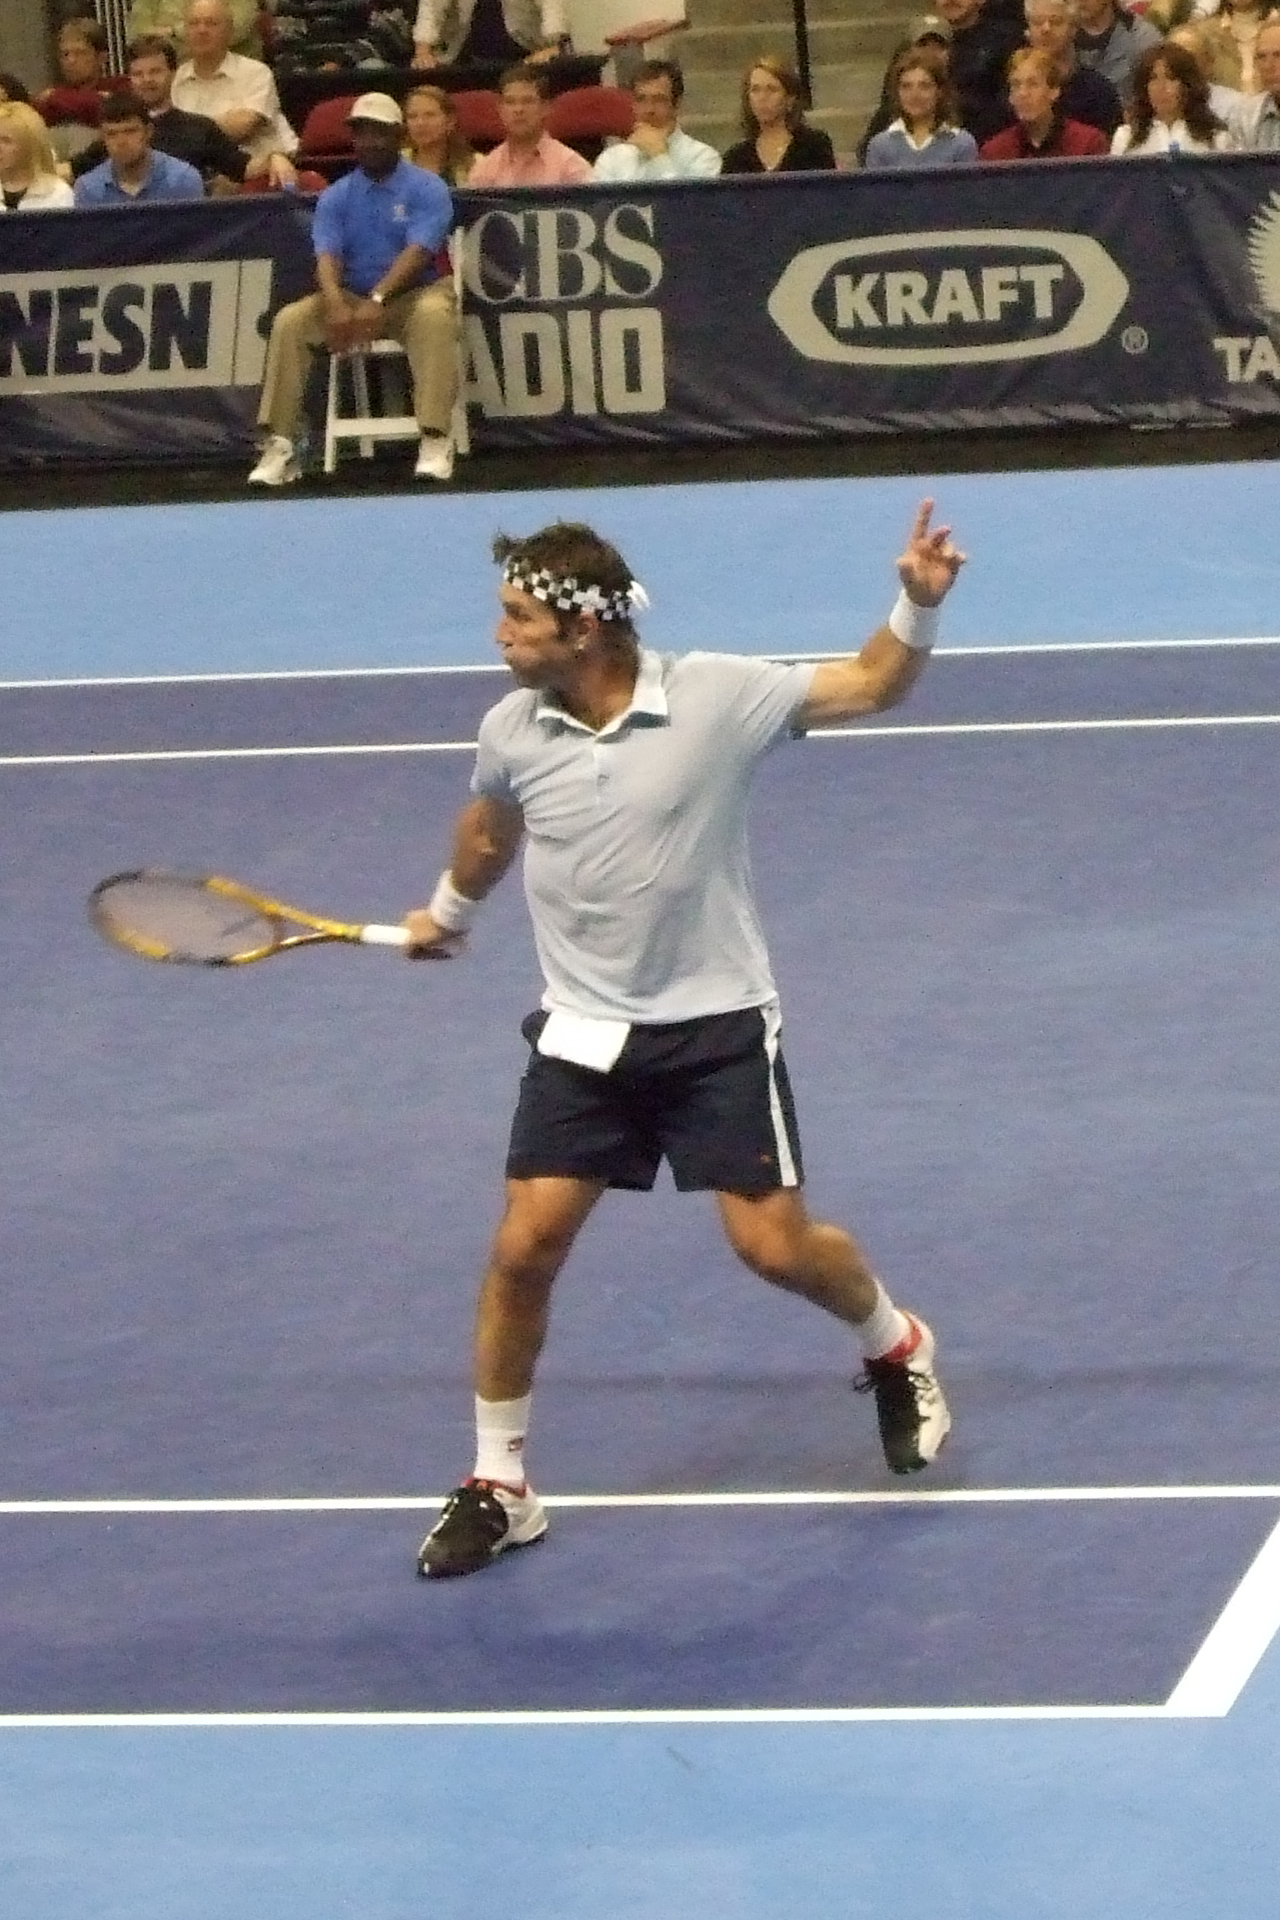 Depiction of Pat Cash